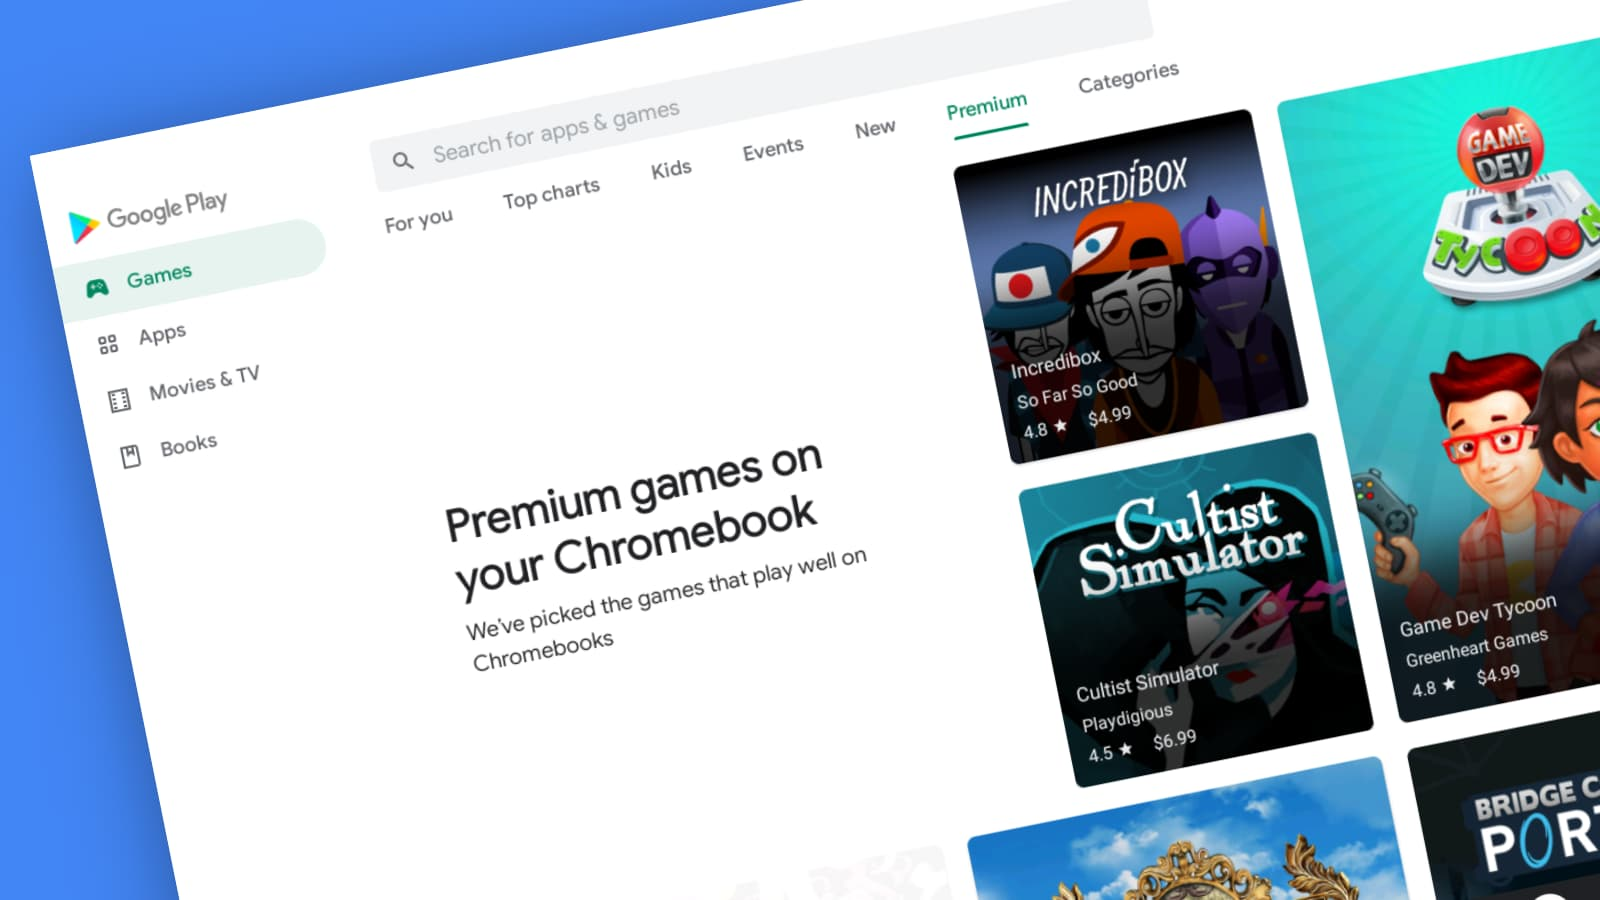 How to navigate the new Google Play Store menu redesign on your Chromebook